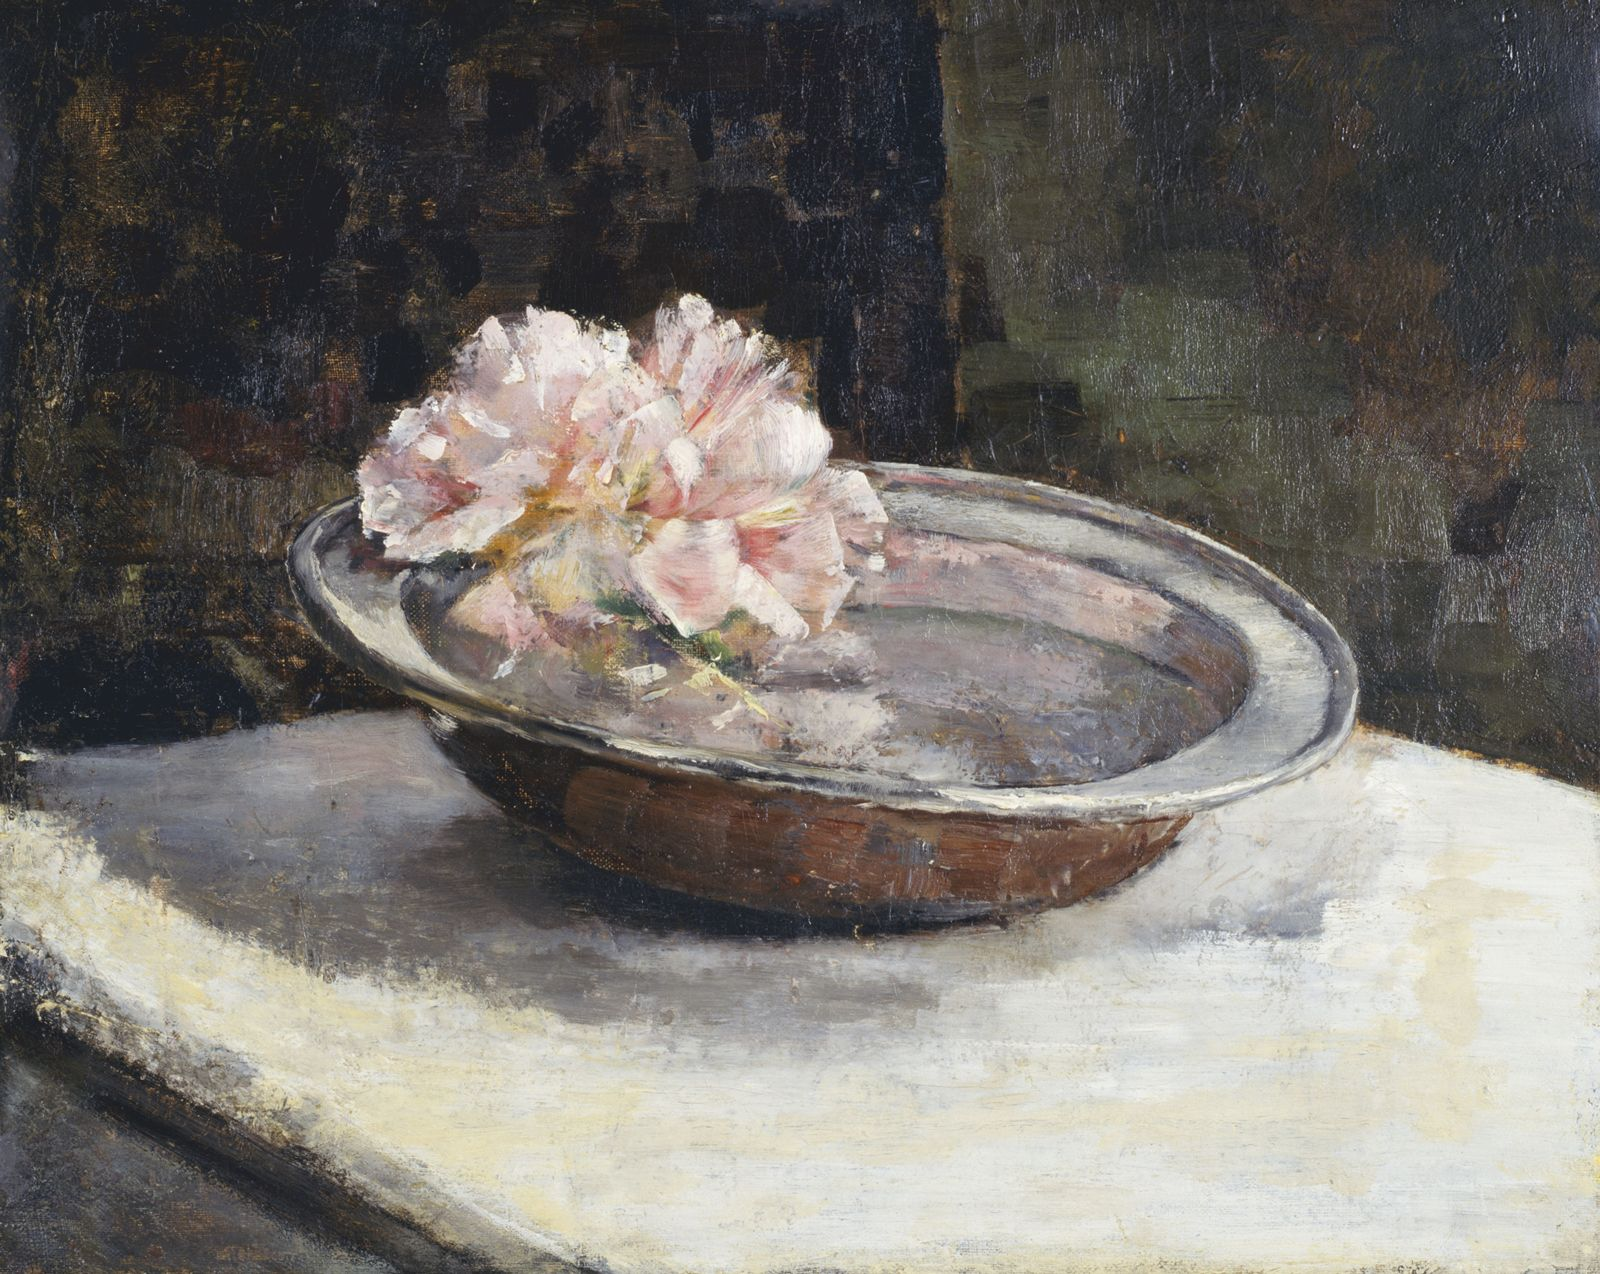 Abbott Handerson Thayer - Still Life (1886) by powderdd in museum